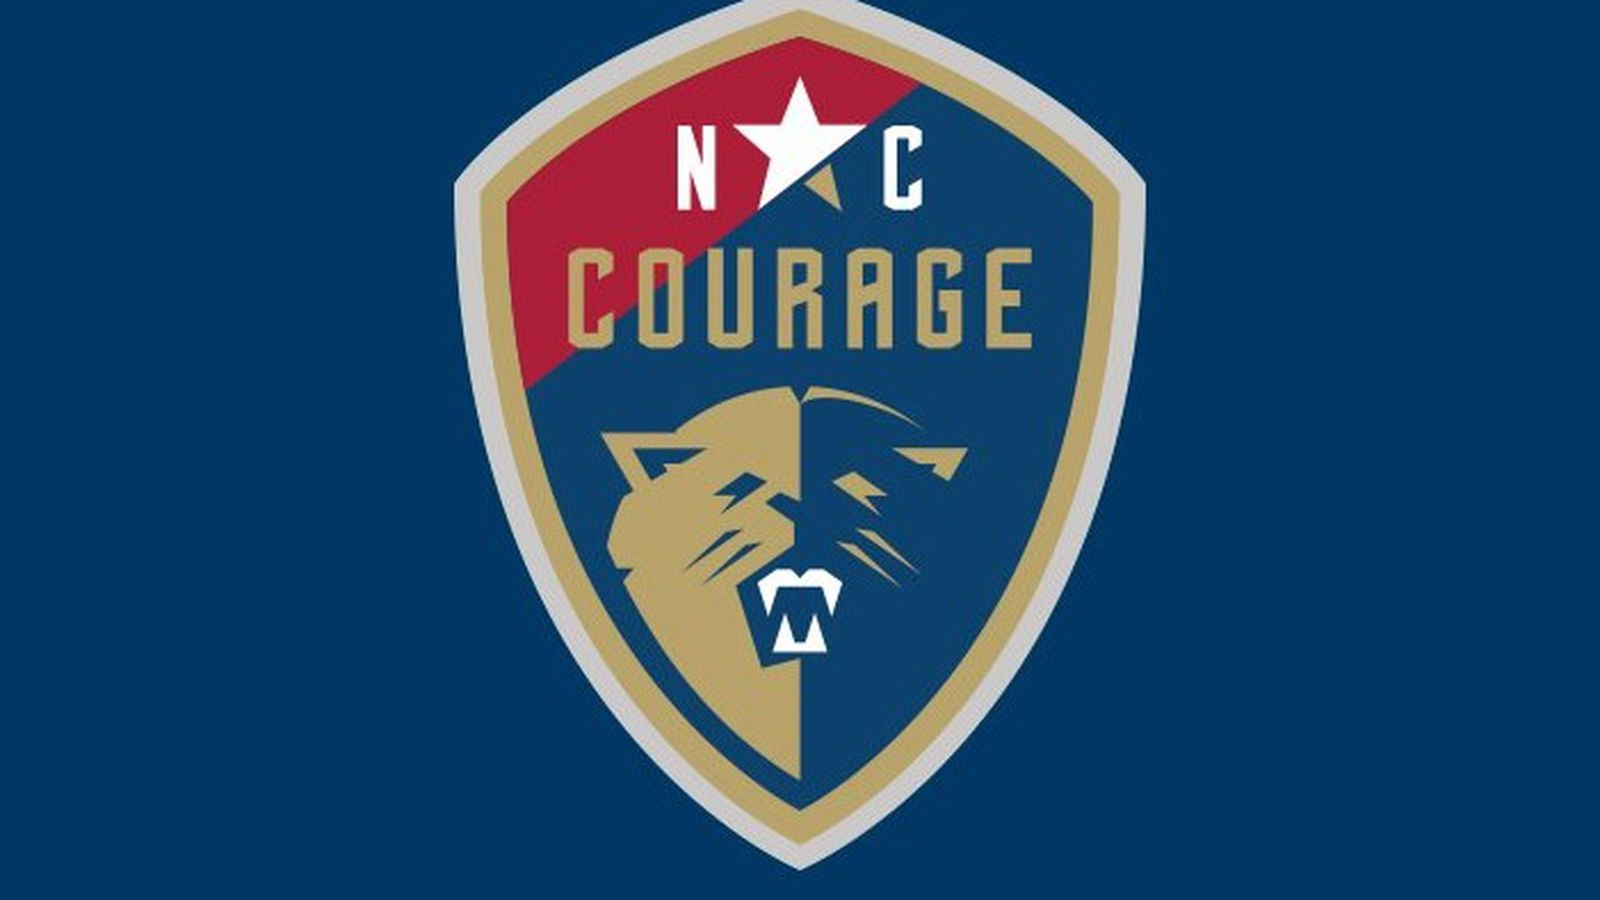 Nc_courage_logo.0